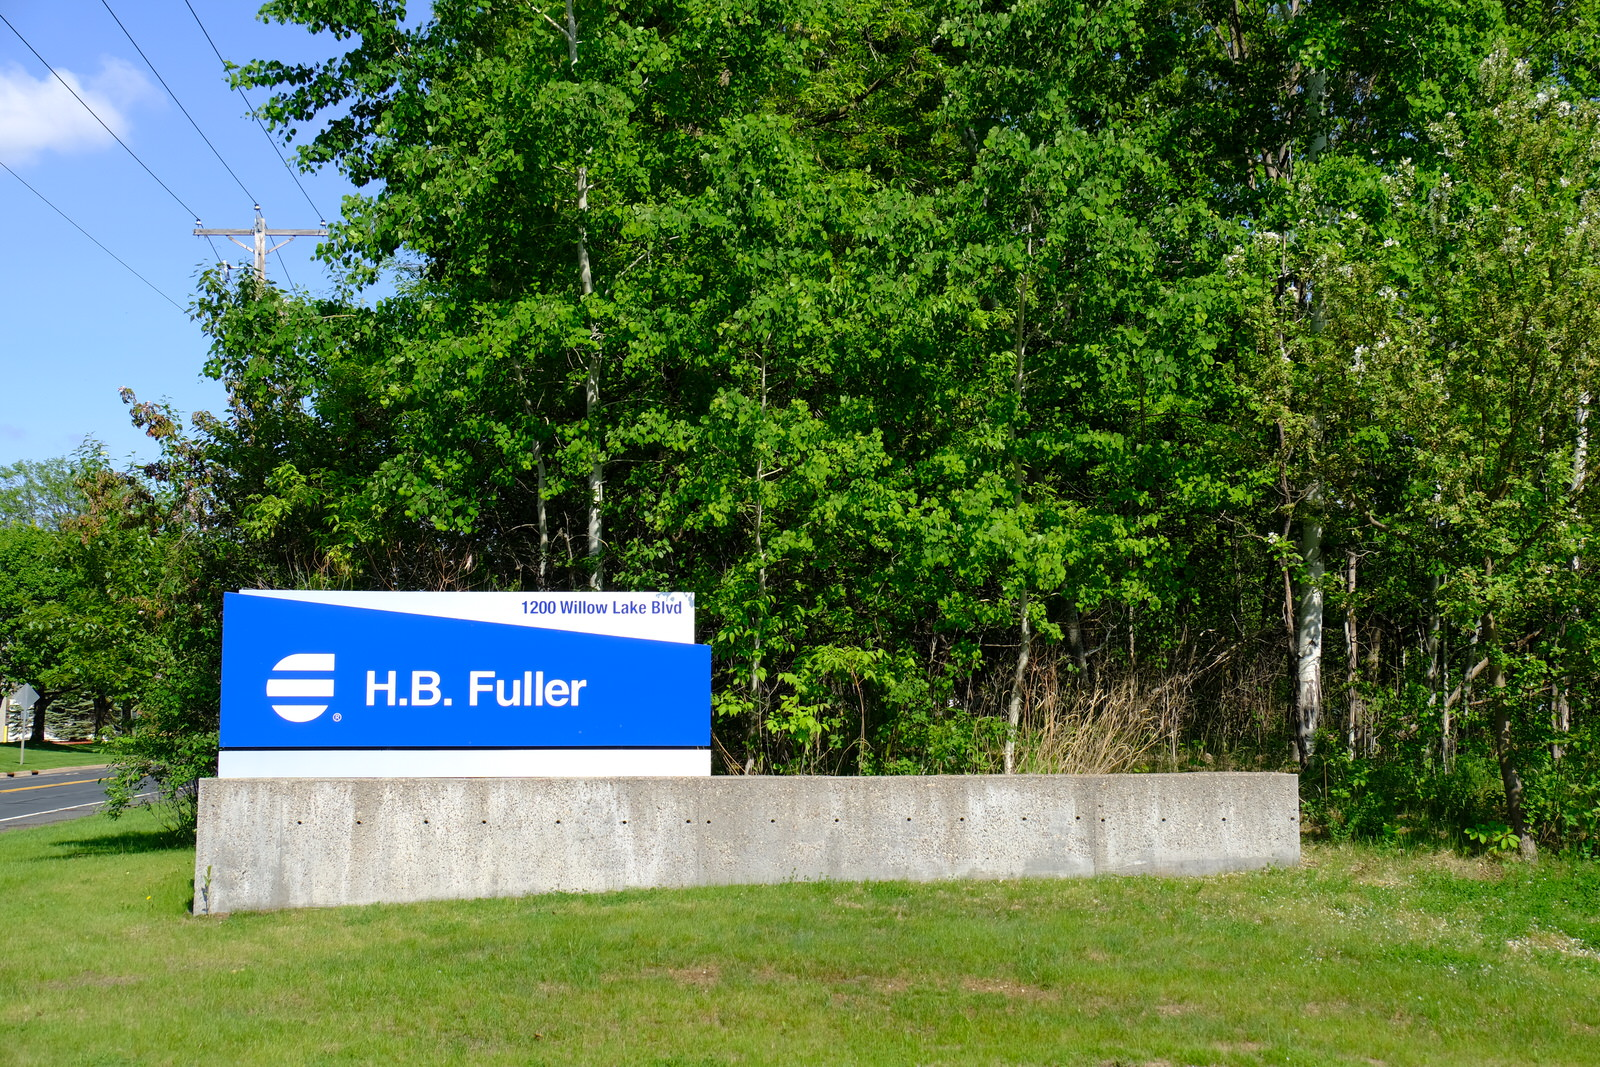 Entrance to H.B. Fuller's corporate headquarters in St. Paul, Minnesota.